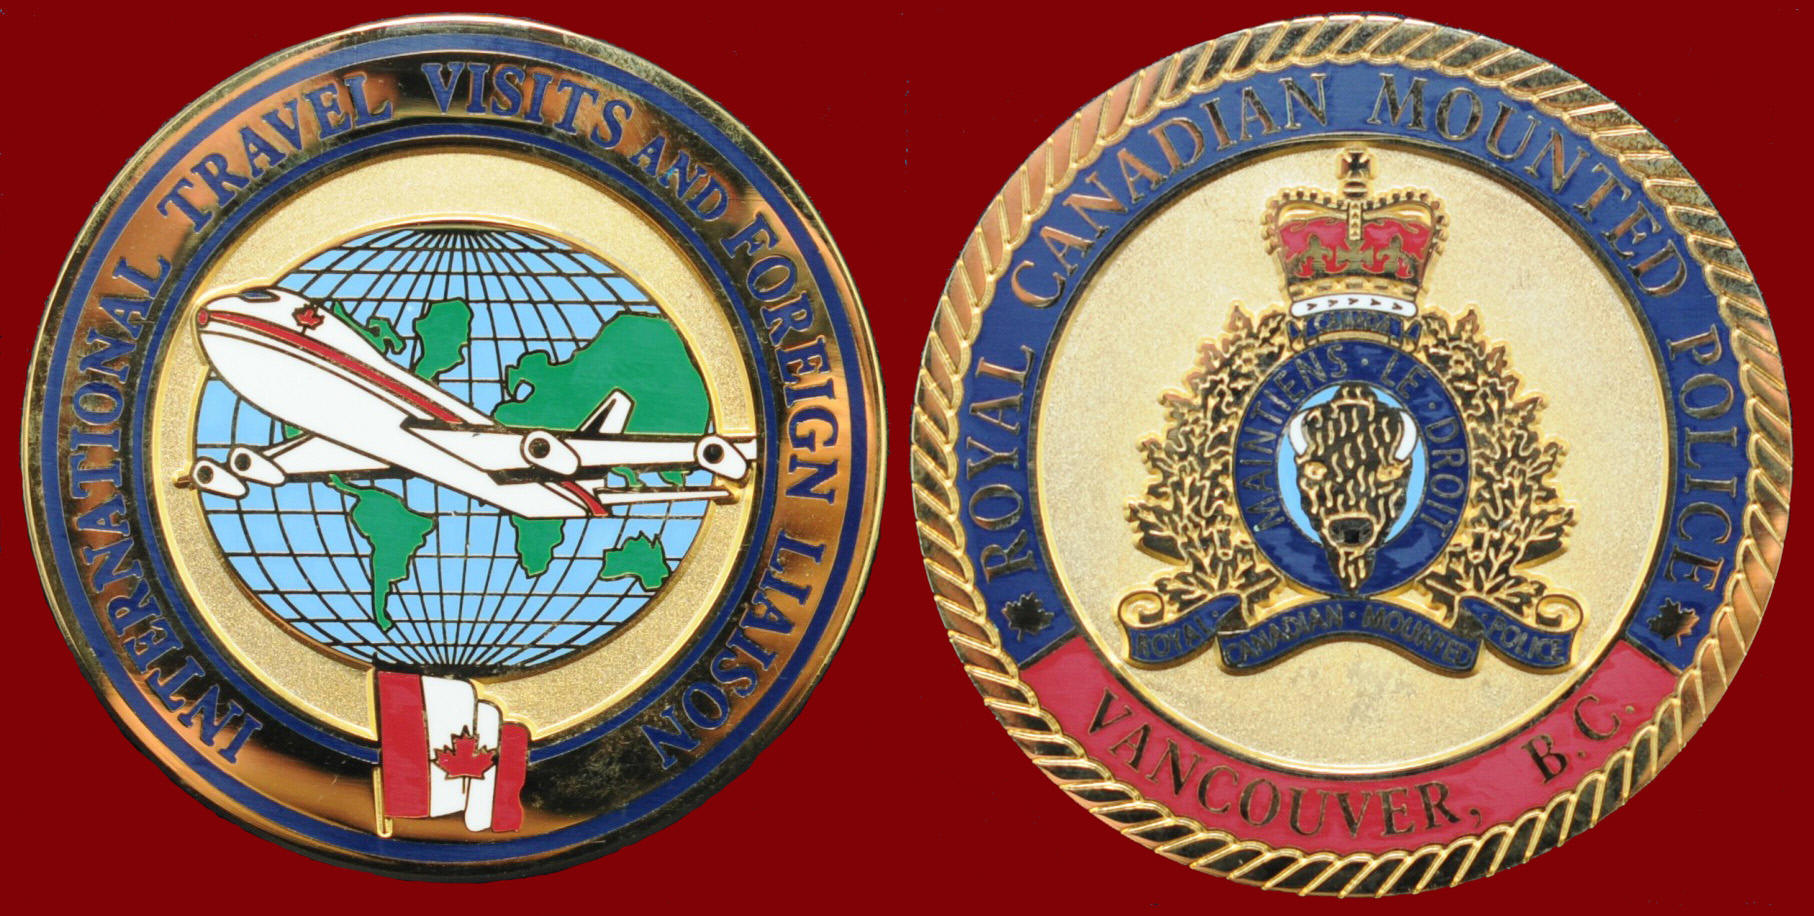 RCMP INTERNATIONAL TRAVEL VISITS AMD FOREIGN LIAISON